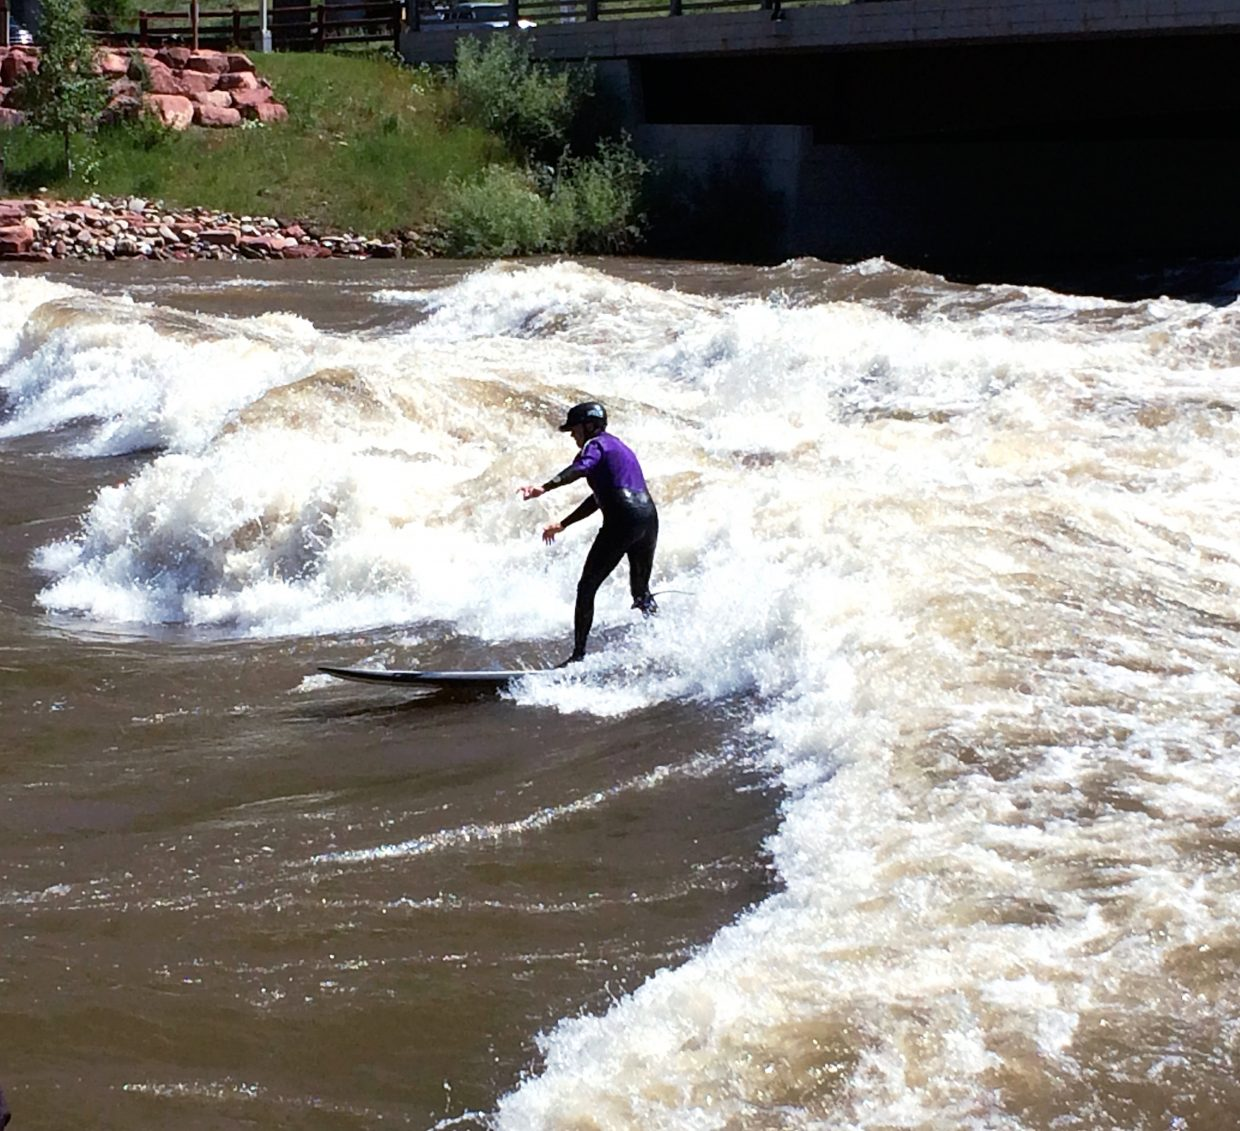 When not overseeing highway projects in the region, Joe Elsen can often be found on the river kayaking or, in this case, paddle boarding at the Glenwood Springs wave whitewater park.